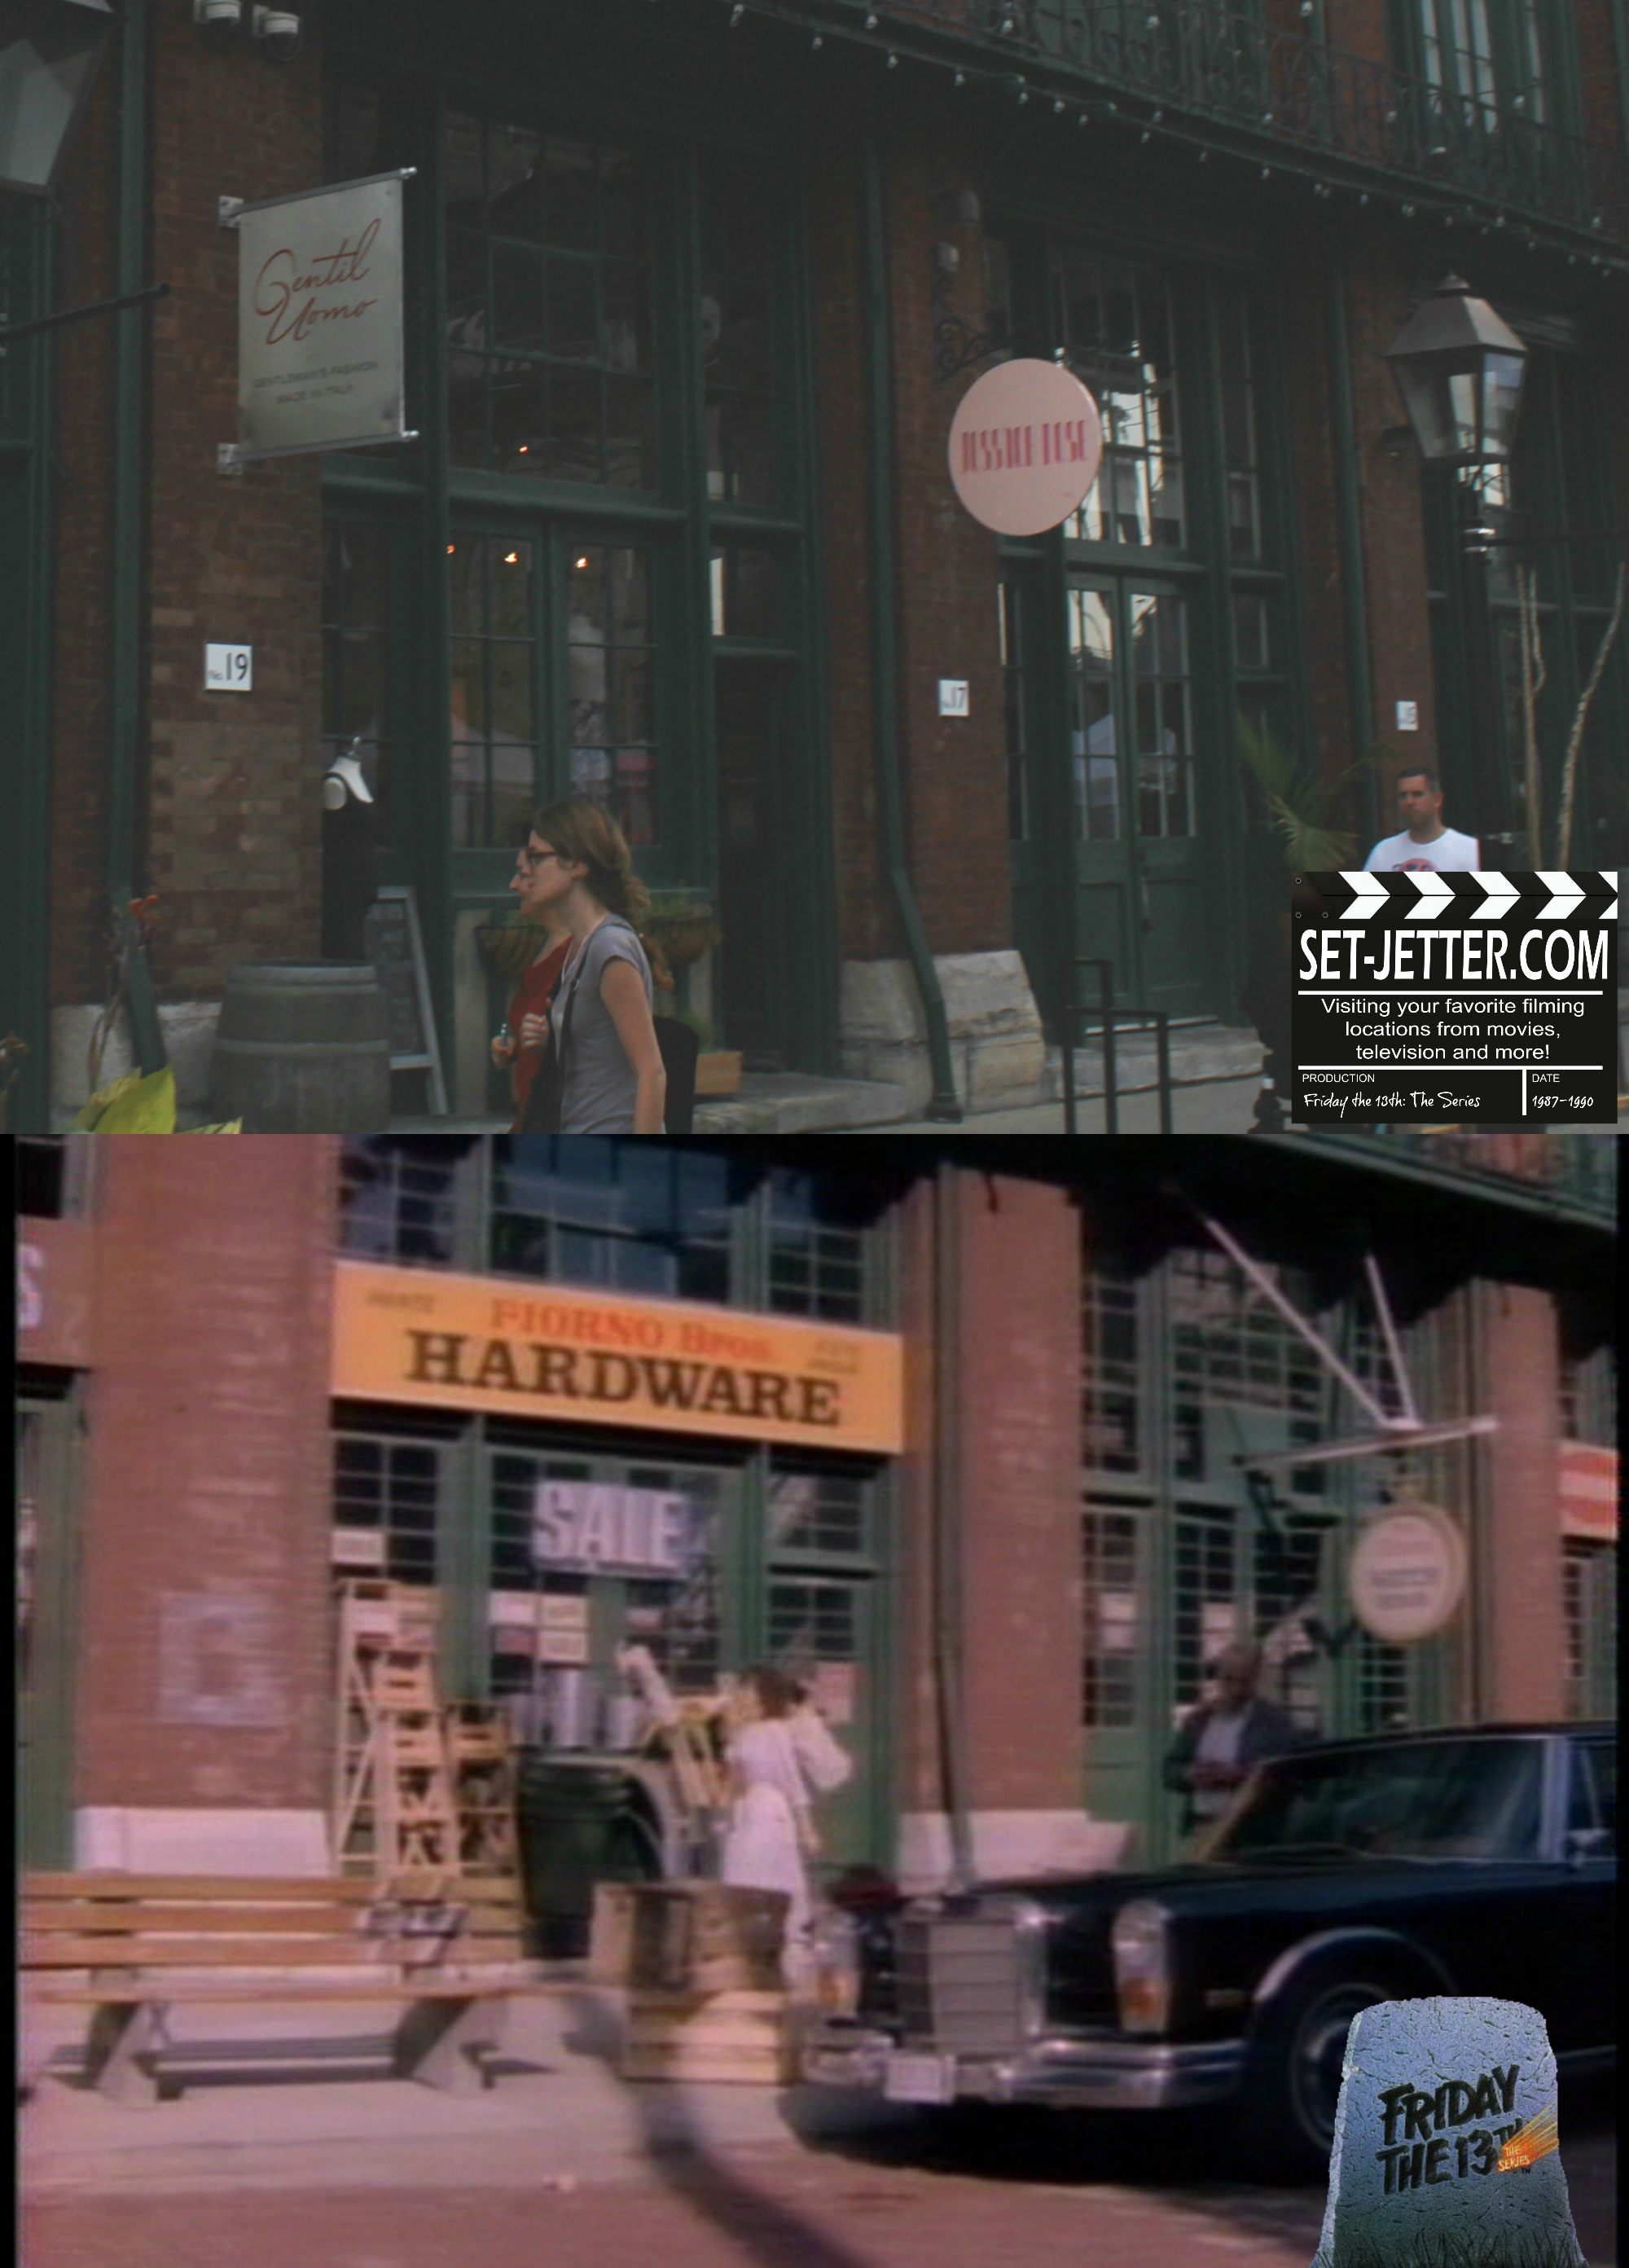 Friday the 13th The Series comparison 13.jpg